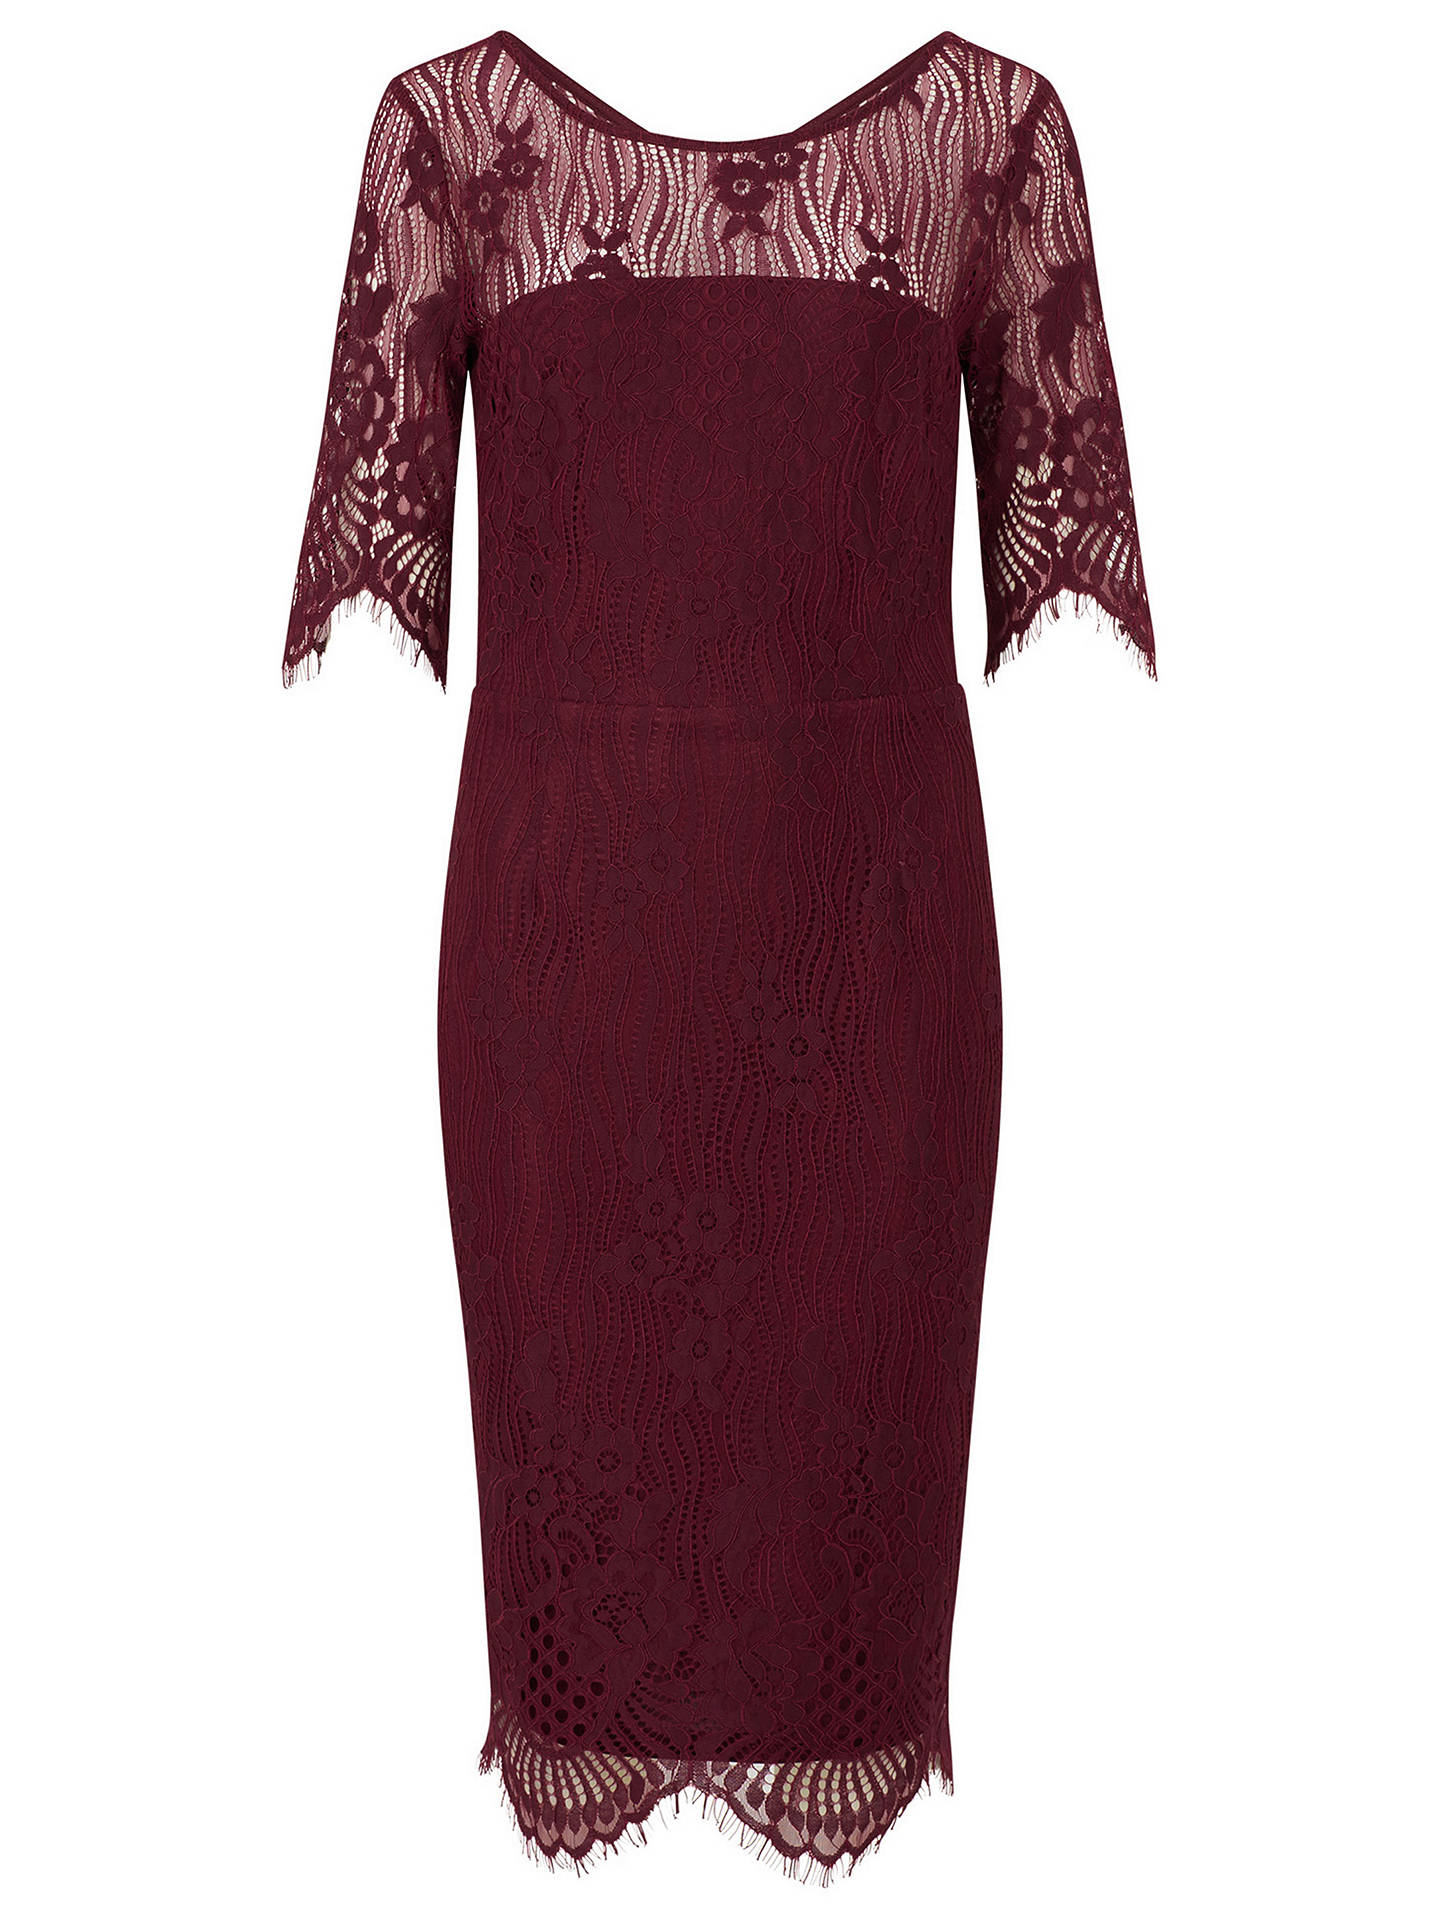 Buy Sugarhill Brighton Grace Lace Knee Length Dress, Burgundy, 8 Online at johnlewis.com